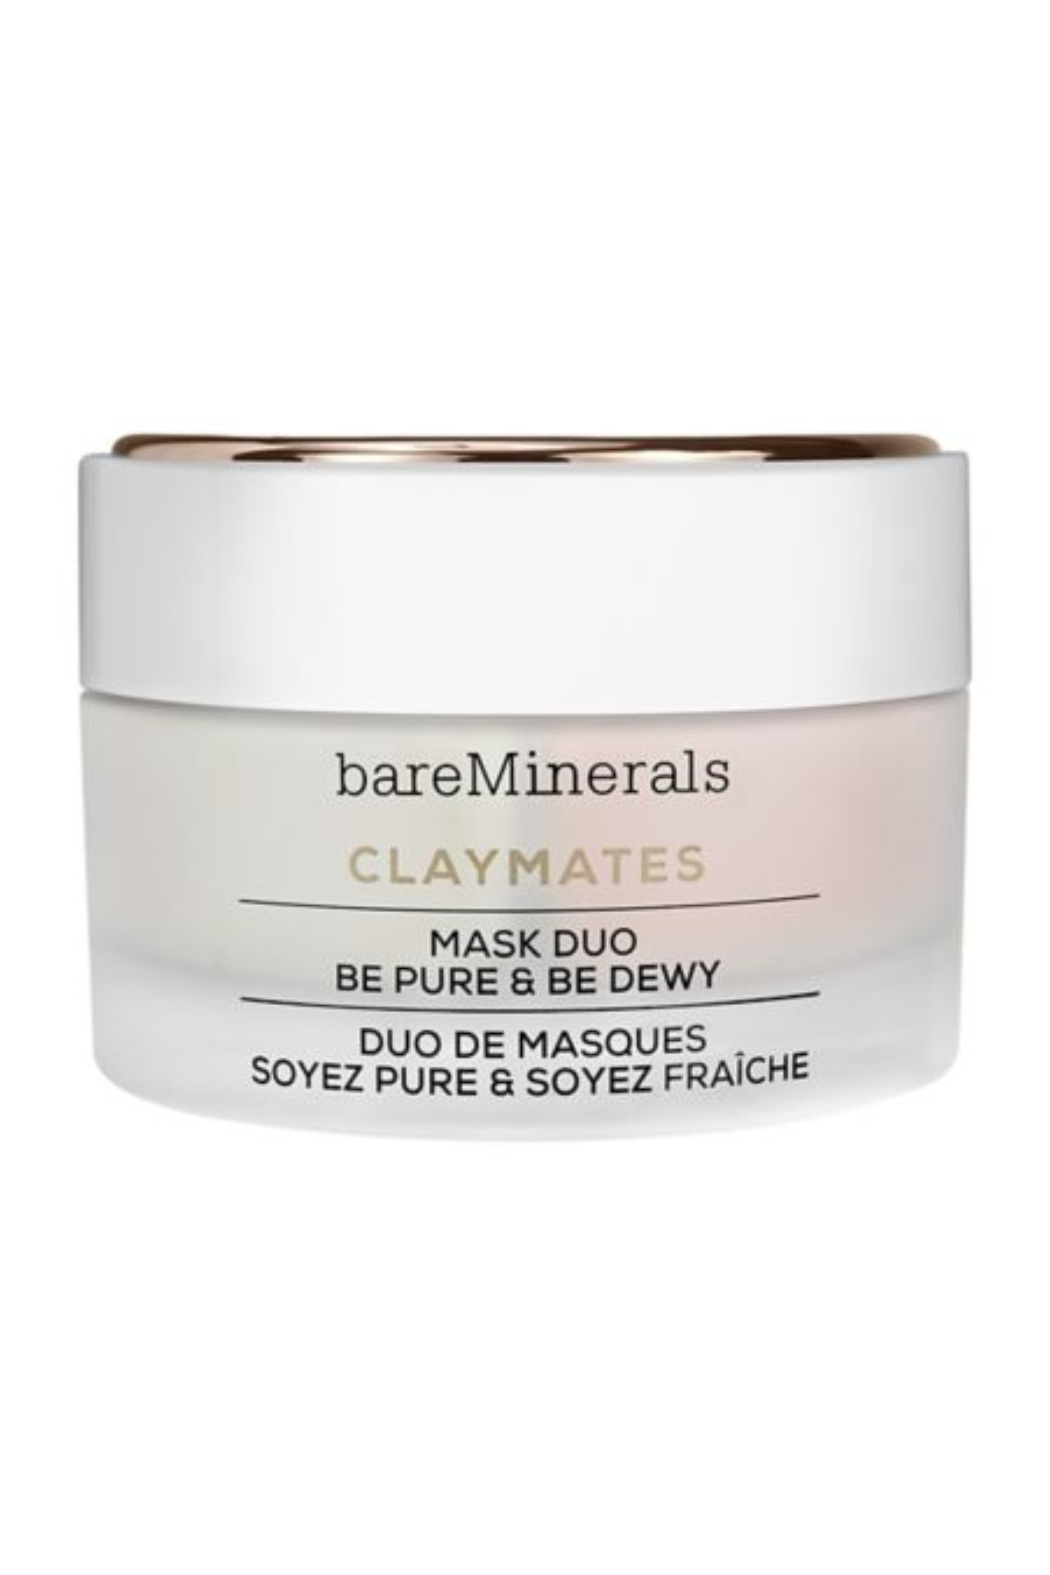 bareMinerals CLAYMATES BE PURE & BE DEWY MASK DUO Clay Face Mask Set - Main Image